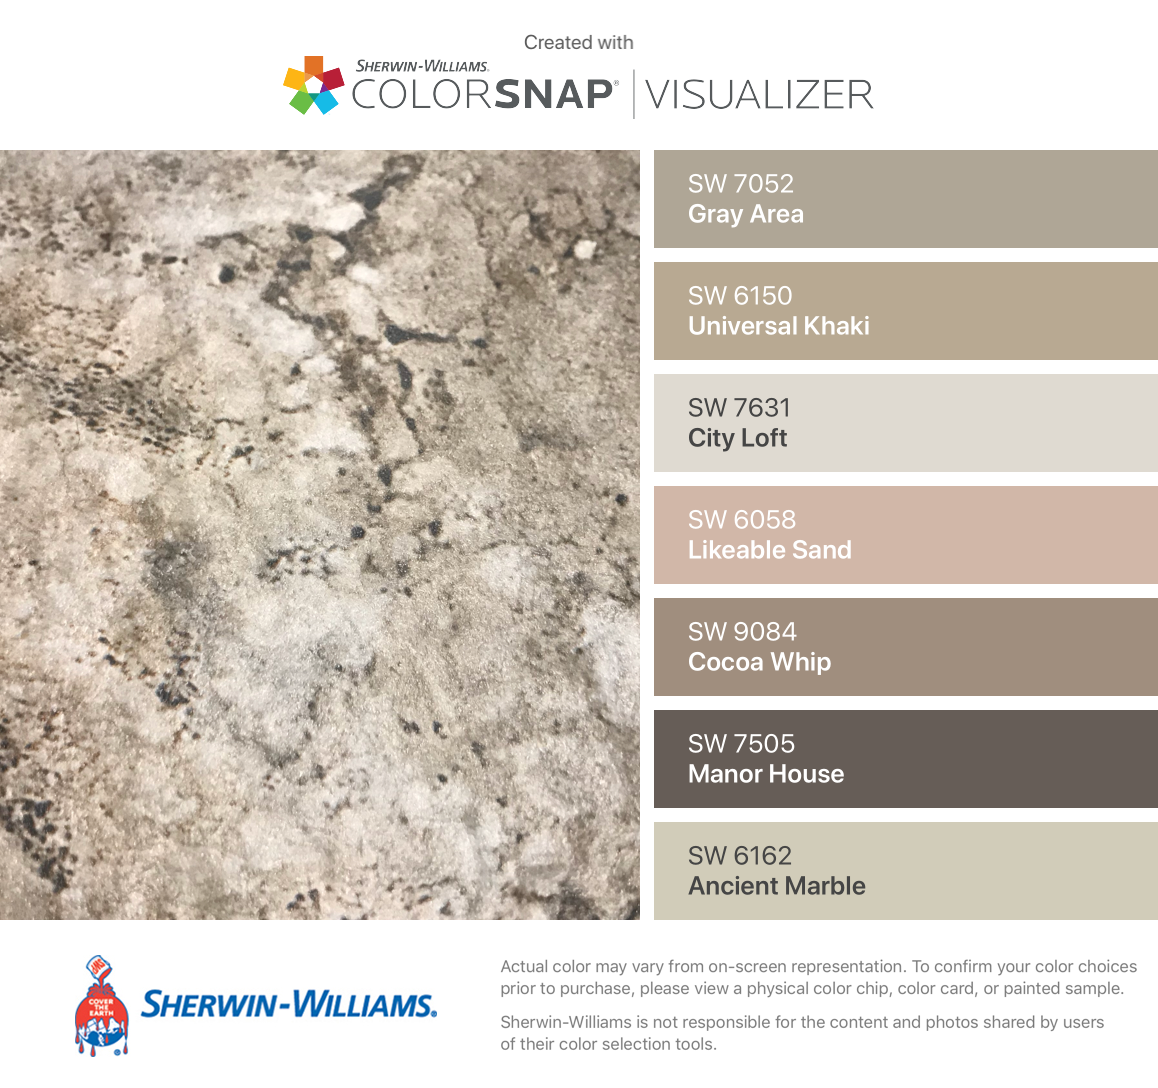 I found these colors with ColorSnap® Visualizer for iPhone by Sherwin-Williams: Gray Area (SW 7052), Universal Khaki (SW 6150), City Loft (SW 7631), Likeable Sand (SW 6058), Cocoa Whip (SW 9084), Manor House (SW 7505), Ancient Marble (SW 6162). #cityloftsherwinwilliams I found these colors with ColorSnap® Visualizer for iPhone by Sherwin-Williams: Gray Area (SW 7052), Universal Khaki (SW 6150), City Loft (SW 7631), Likeable Sand (SW 6058), Cocoa Whip (SW 9084), Manor House (SW 7505), Ancient M #cityloftsherwinwilliams